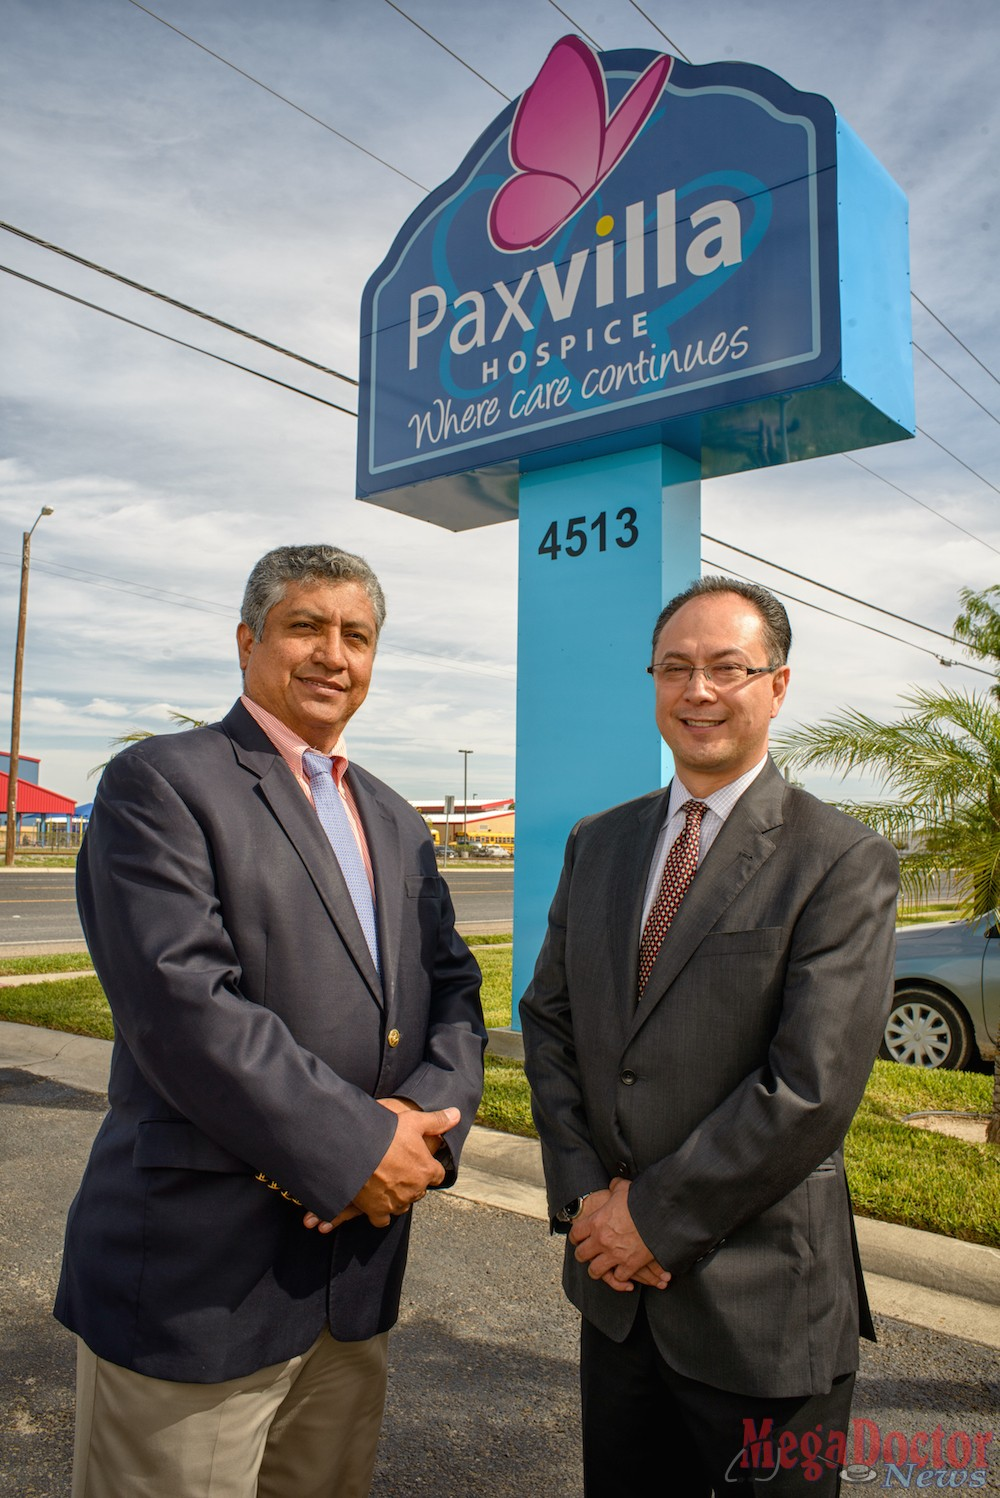 Counselors for Pax Villa Hospice L-R: Lauro Roman and Sergio Hernandez